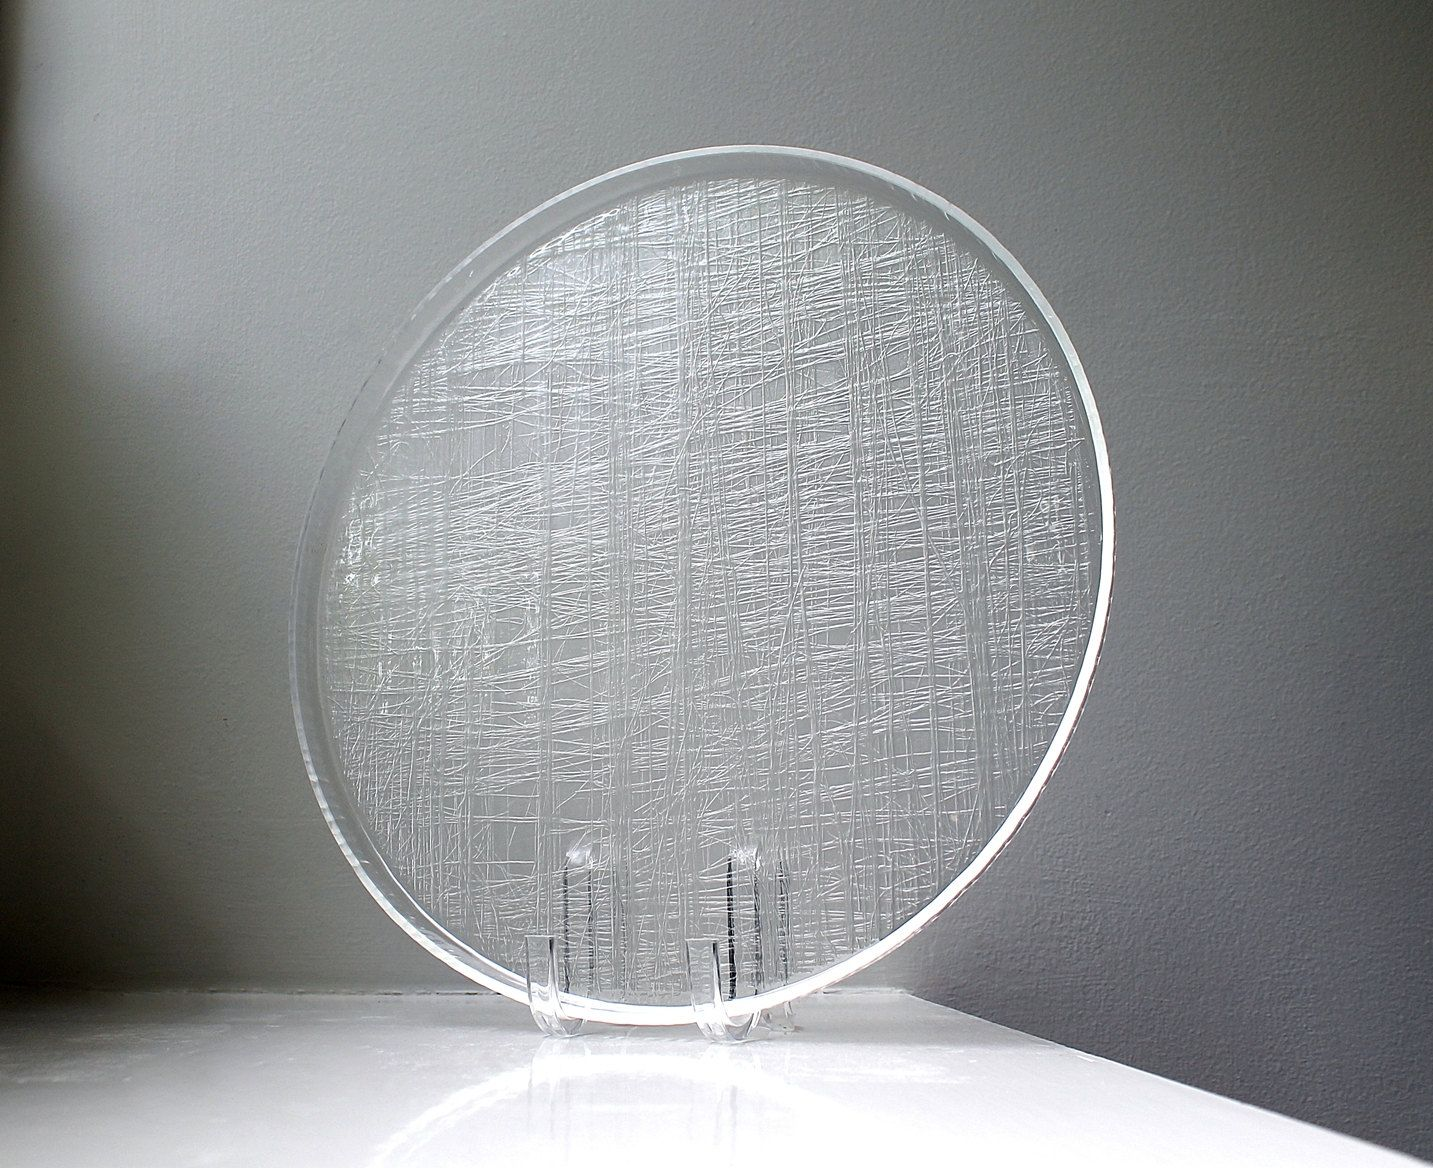 Mod Textured Lucite Tray Brutalist Abstract Vintage Clear Acrylic Plastic Charger 1960's by VintageModernAndMore on Etsy